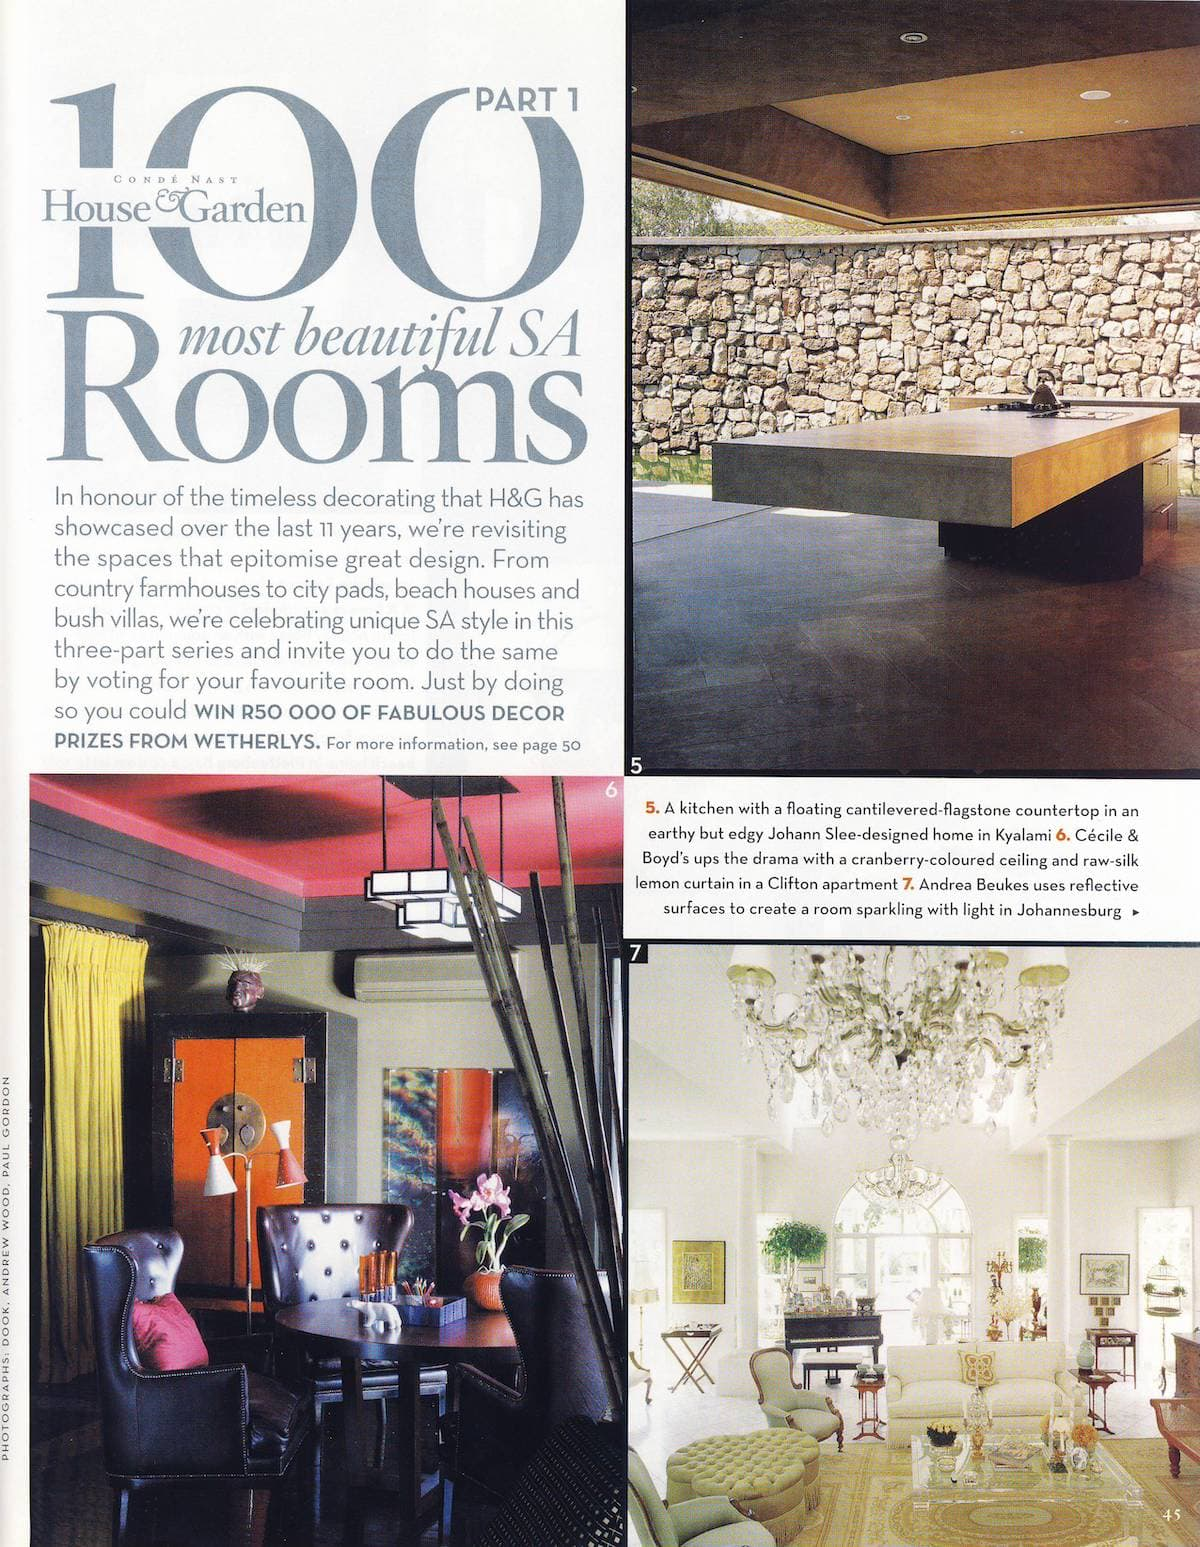 2009 House & Garden Most Beautiful Rooms Pg01